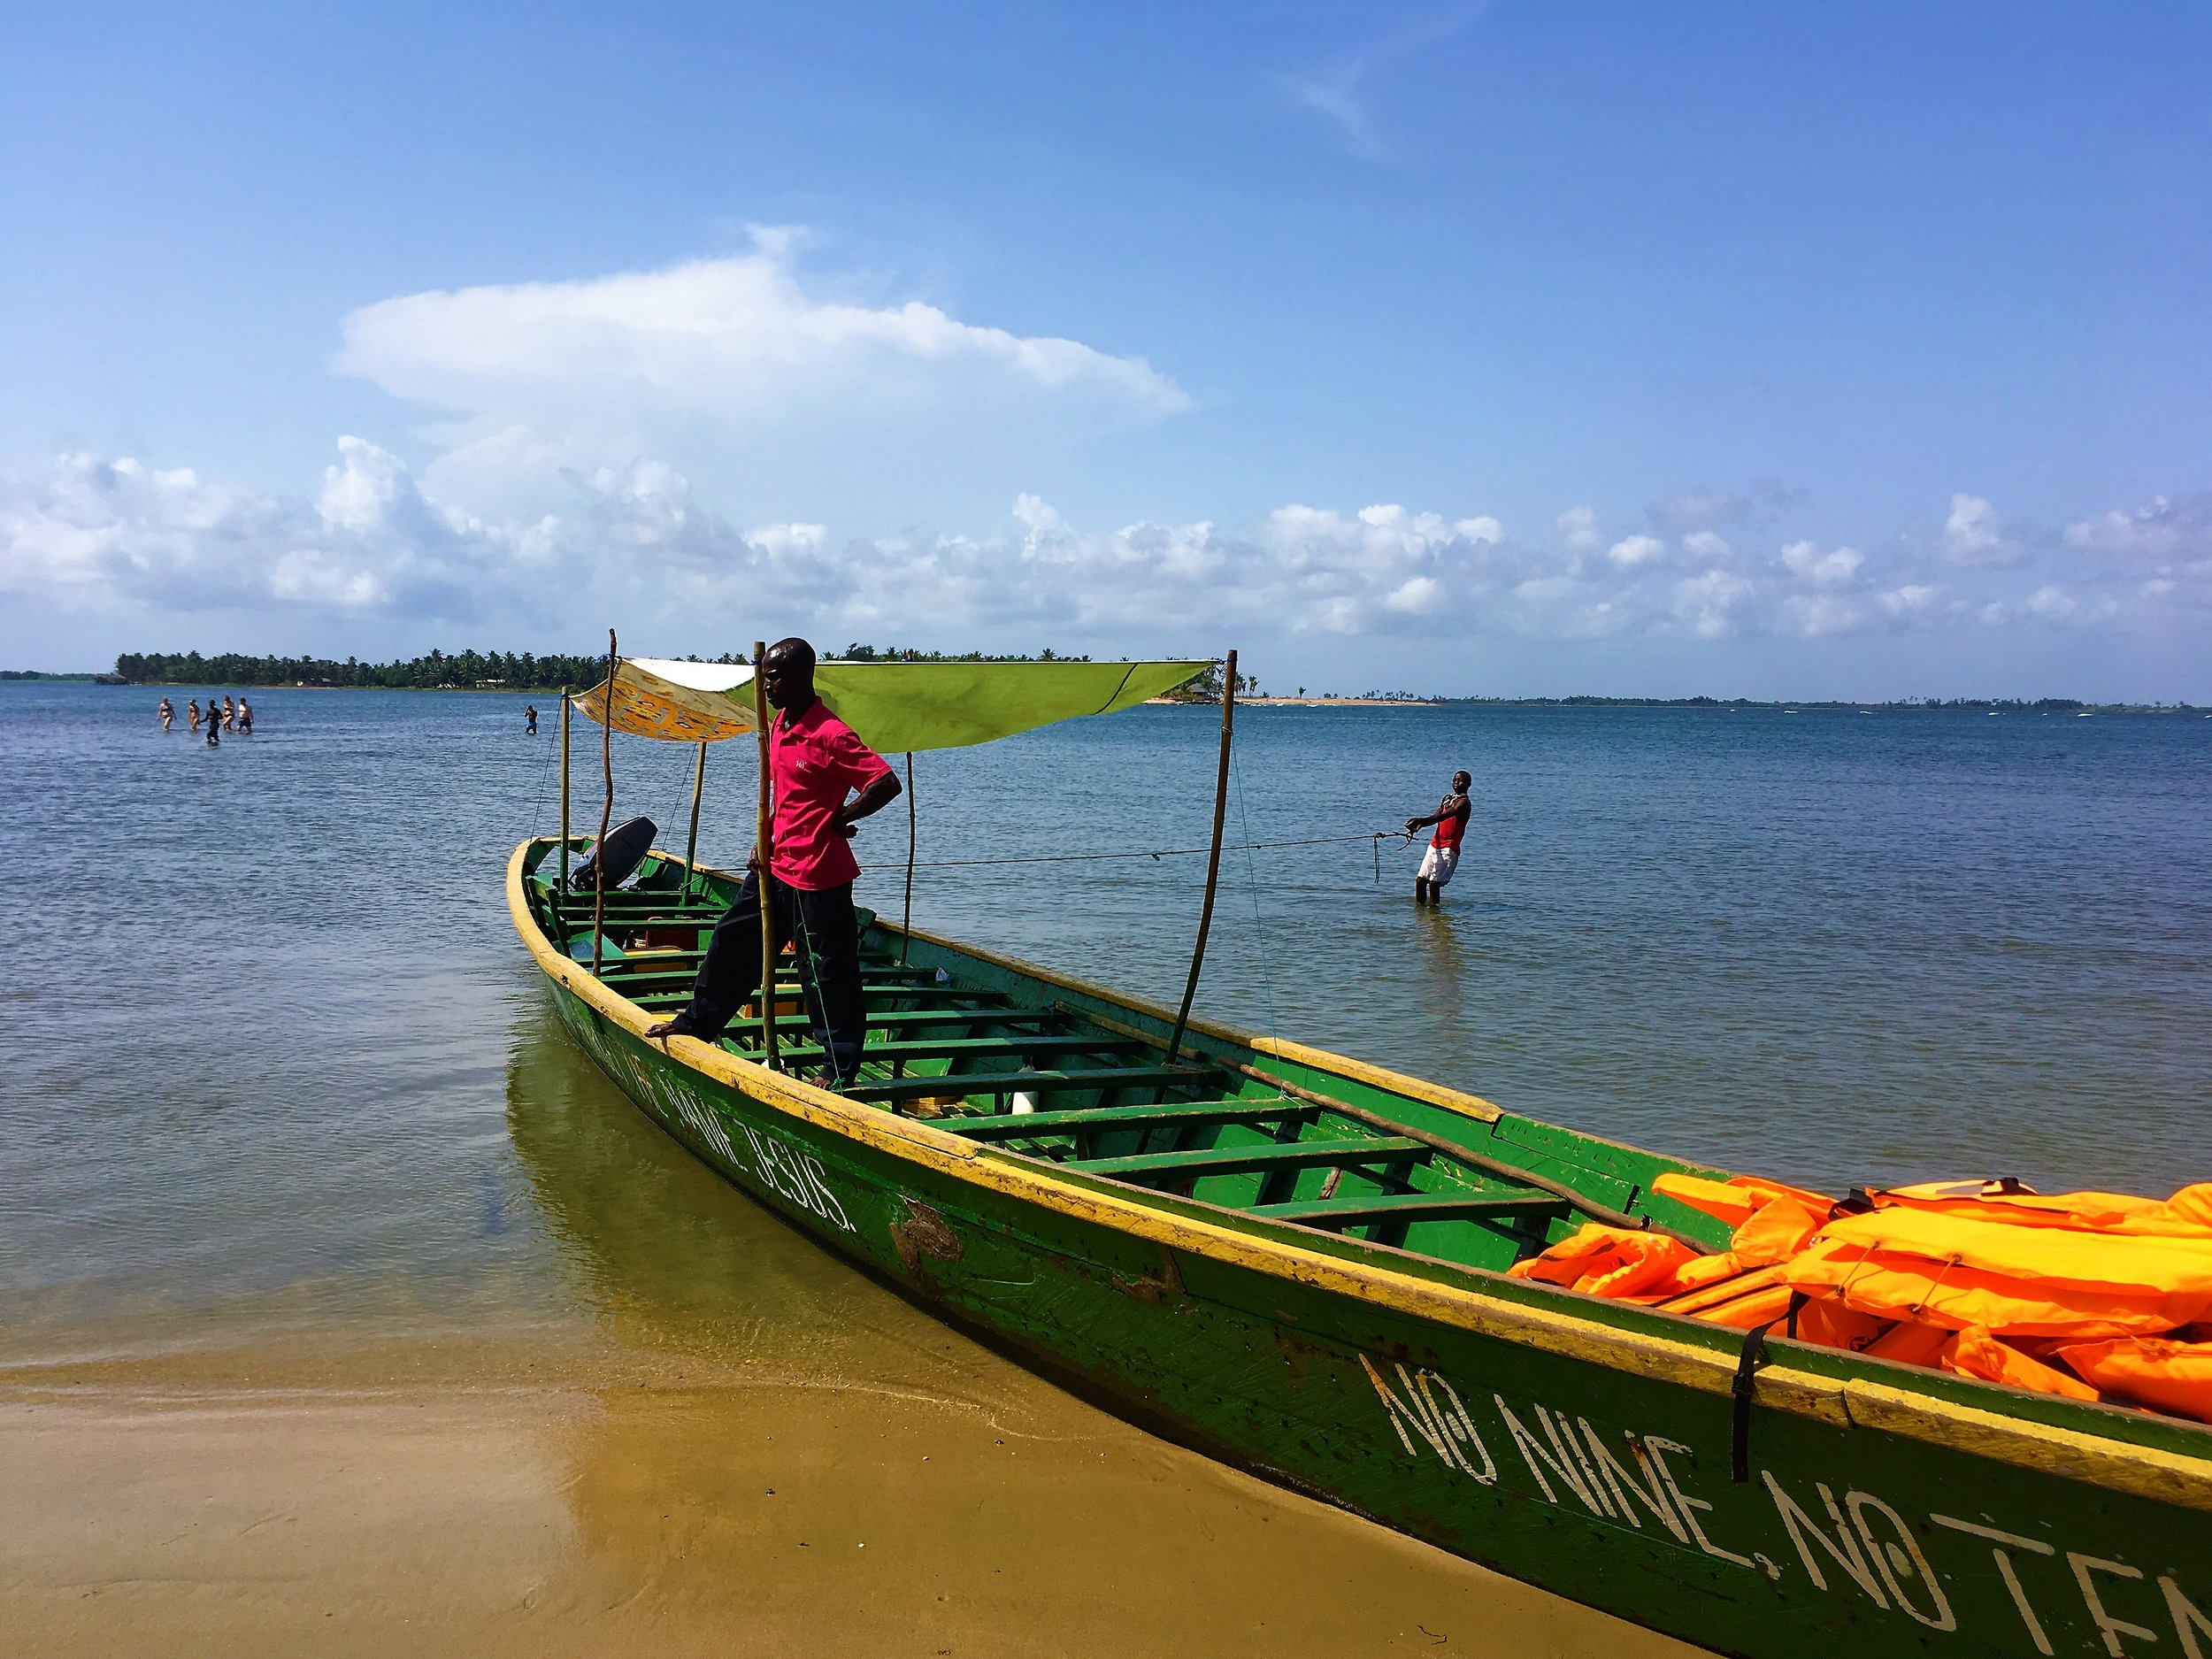 The boat that we took to our island. The boy in the water holding the rope was most likley a child slave.JPG